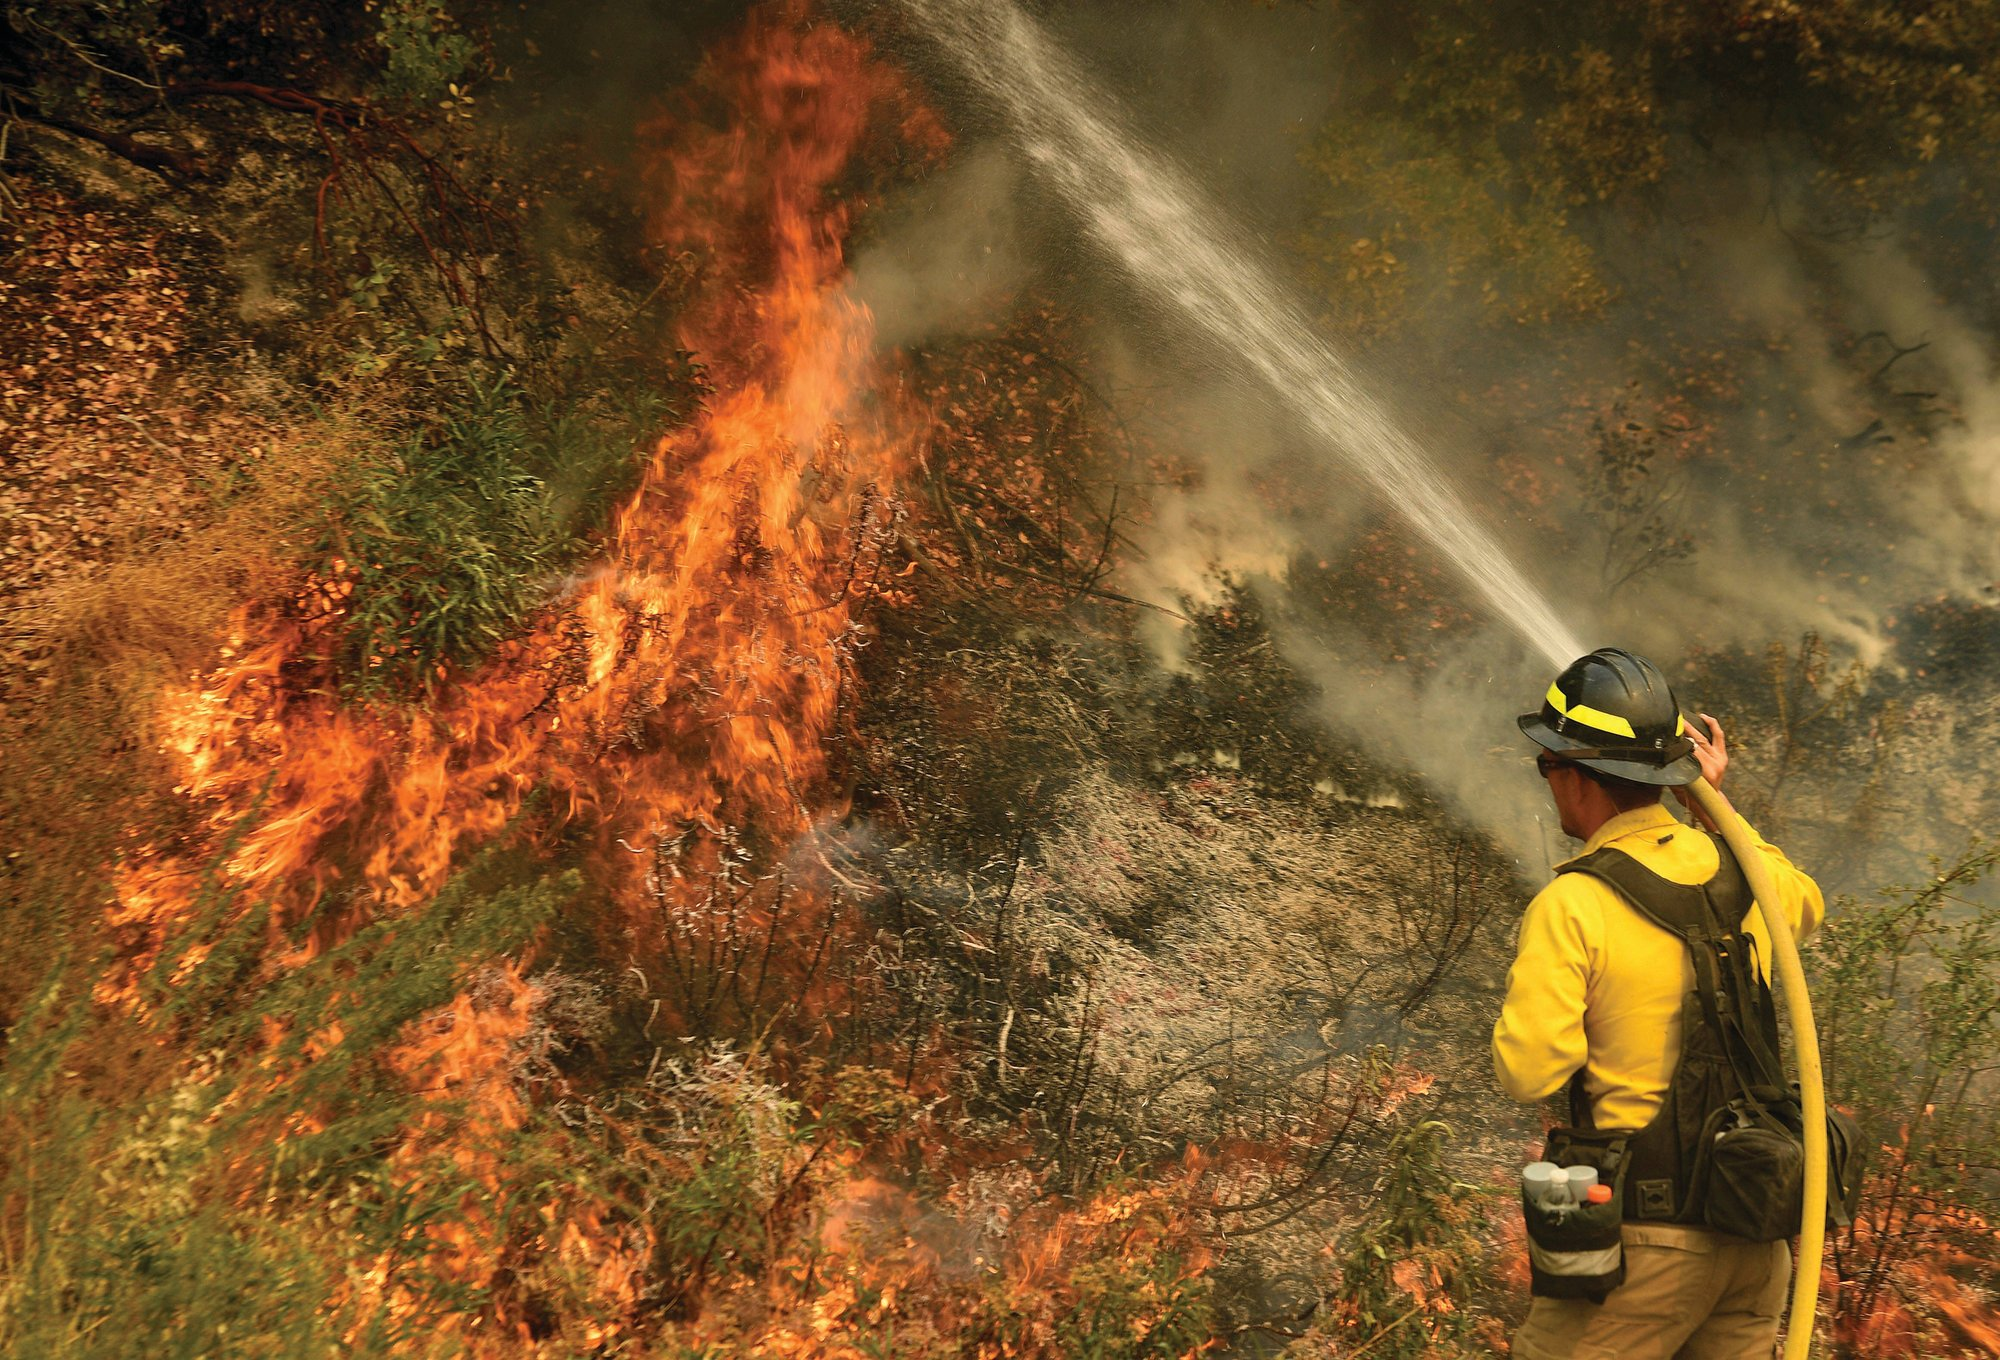 Will Lester / The Orange County Register/SCNG via AP   A firefighter puts out a hot spot along Highway 38 northwest of Forrest Falls, California, as the El Dorado Fire continues to burn Thursday afternoon. The fire started by a device at a gender reveal party last Saturday.